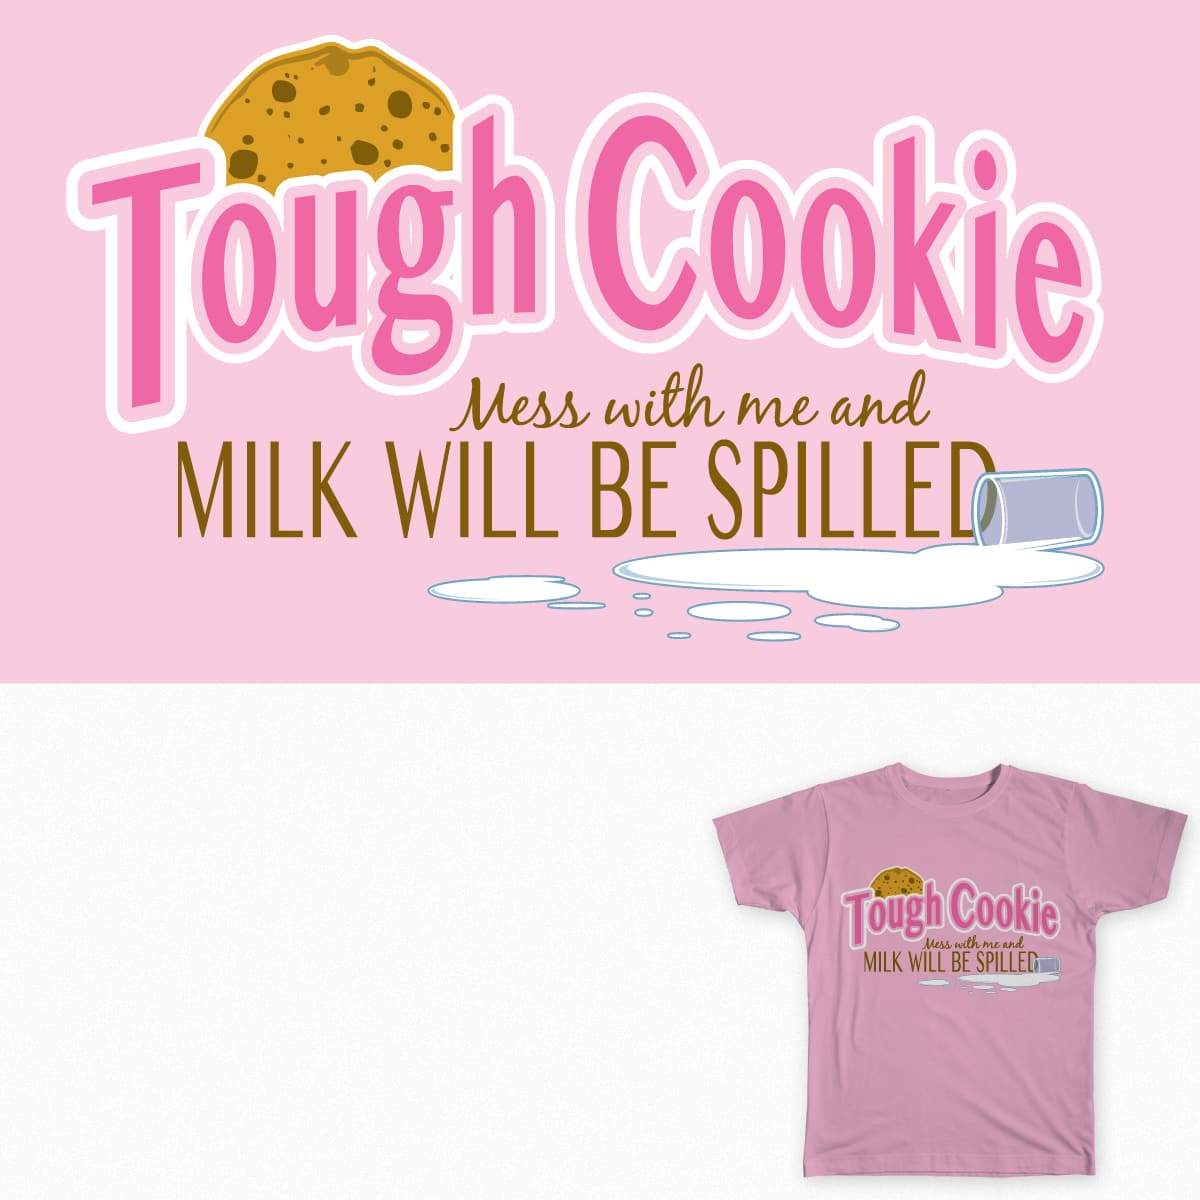 Tough Cookie by samsonleague on Threadless